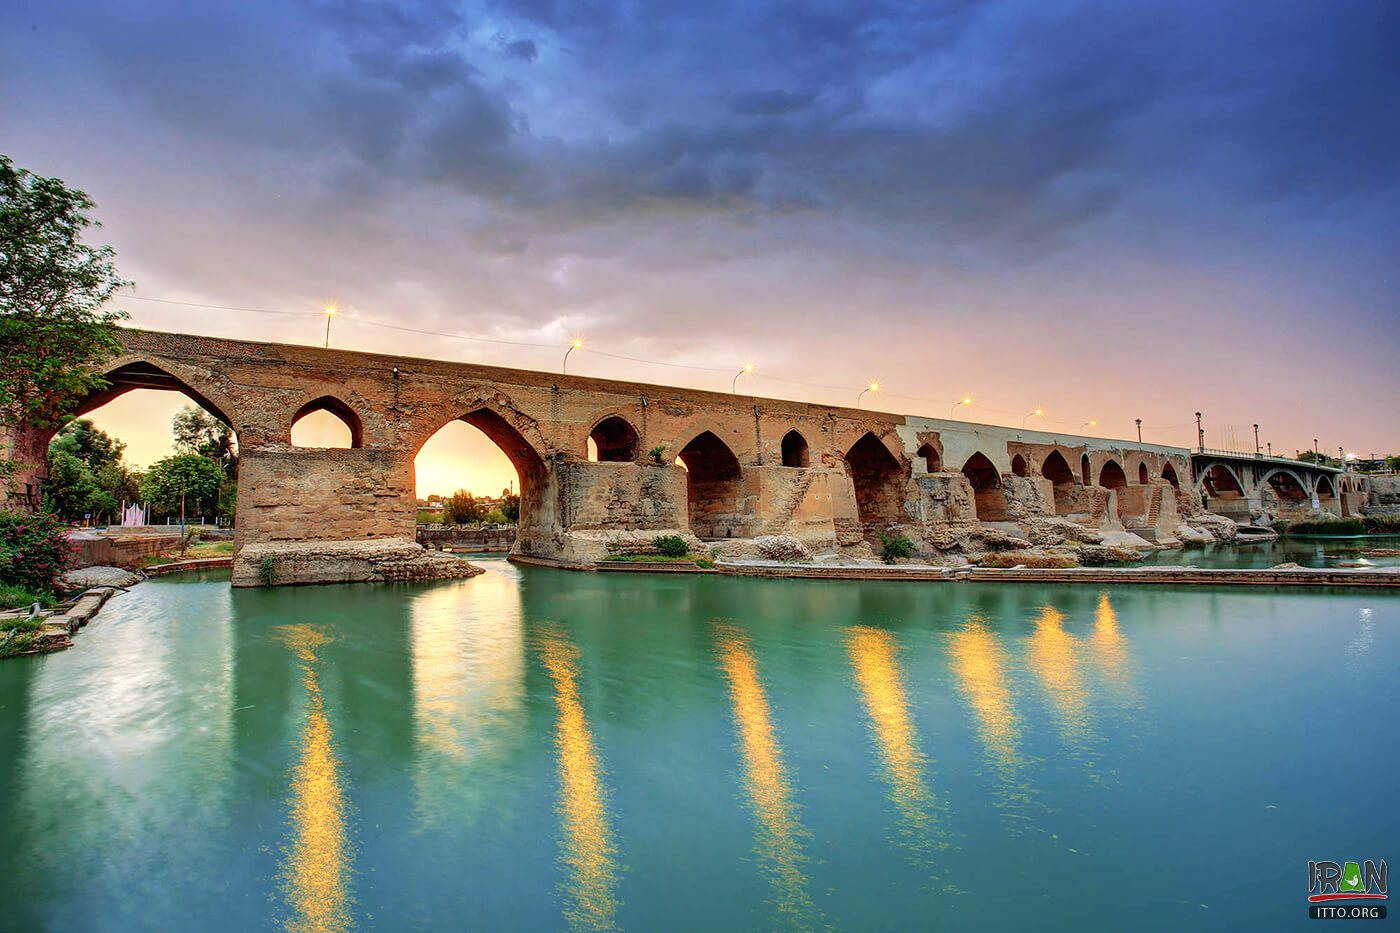 Dezful Old Bridge,Pol-e Dezful,پل دزفول,پل ساسانی دزفول,پل دوره ساسانی خوزستان,khuzestan old bridge,khuzistan historical bridge,poldezful,poledezful